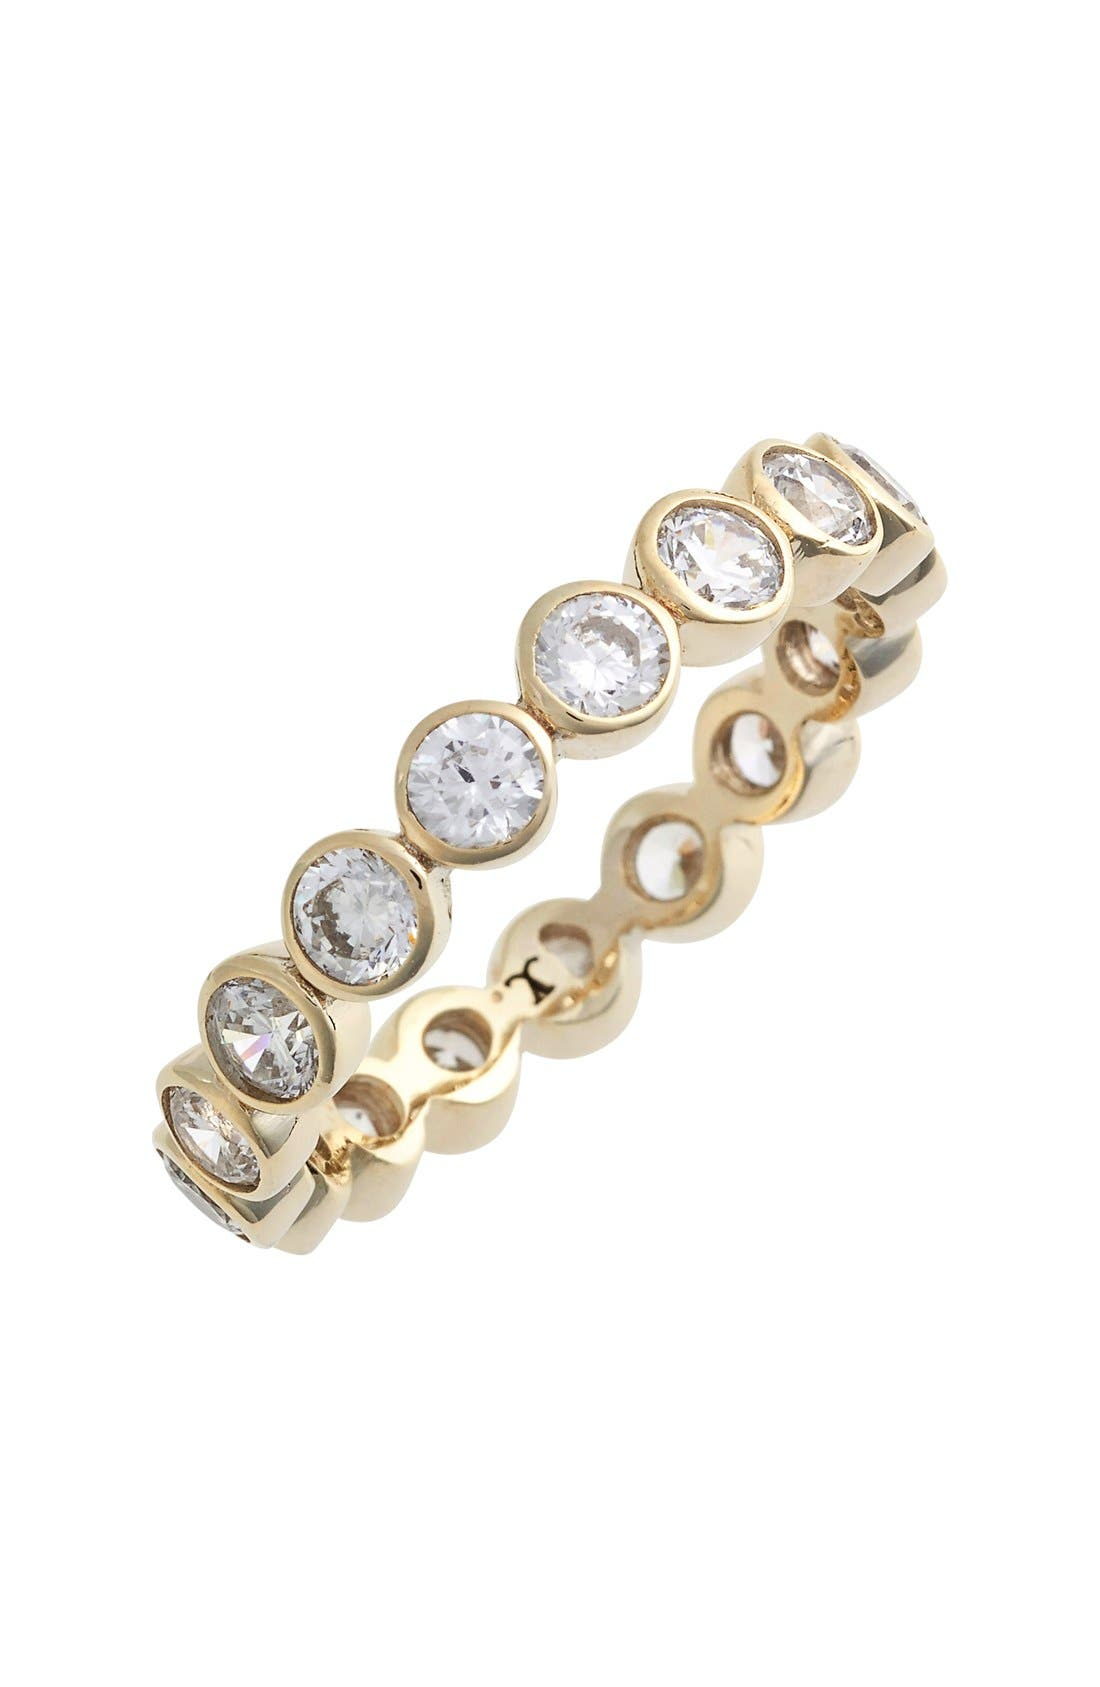 Judith Jack Stackable Cubic Zirconia Bezel Ring